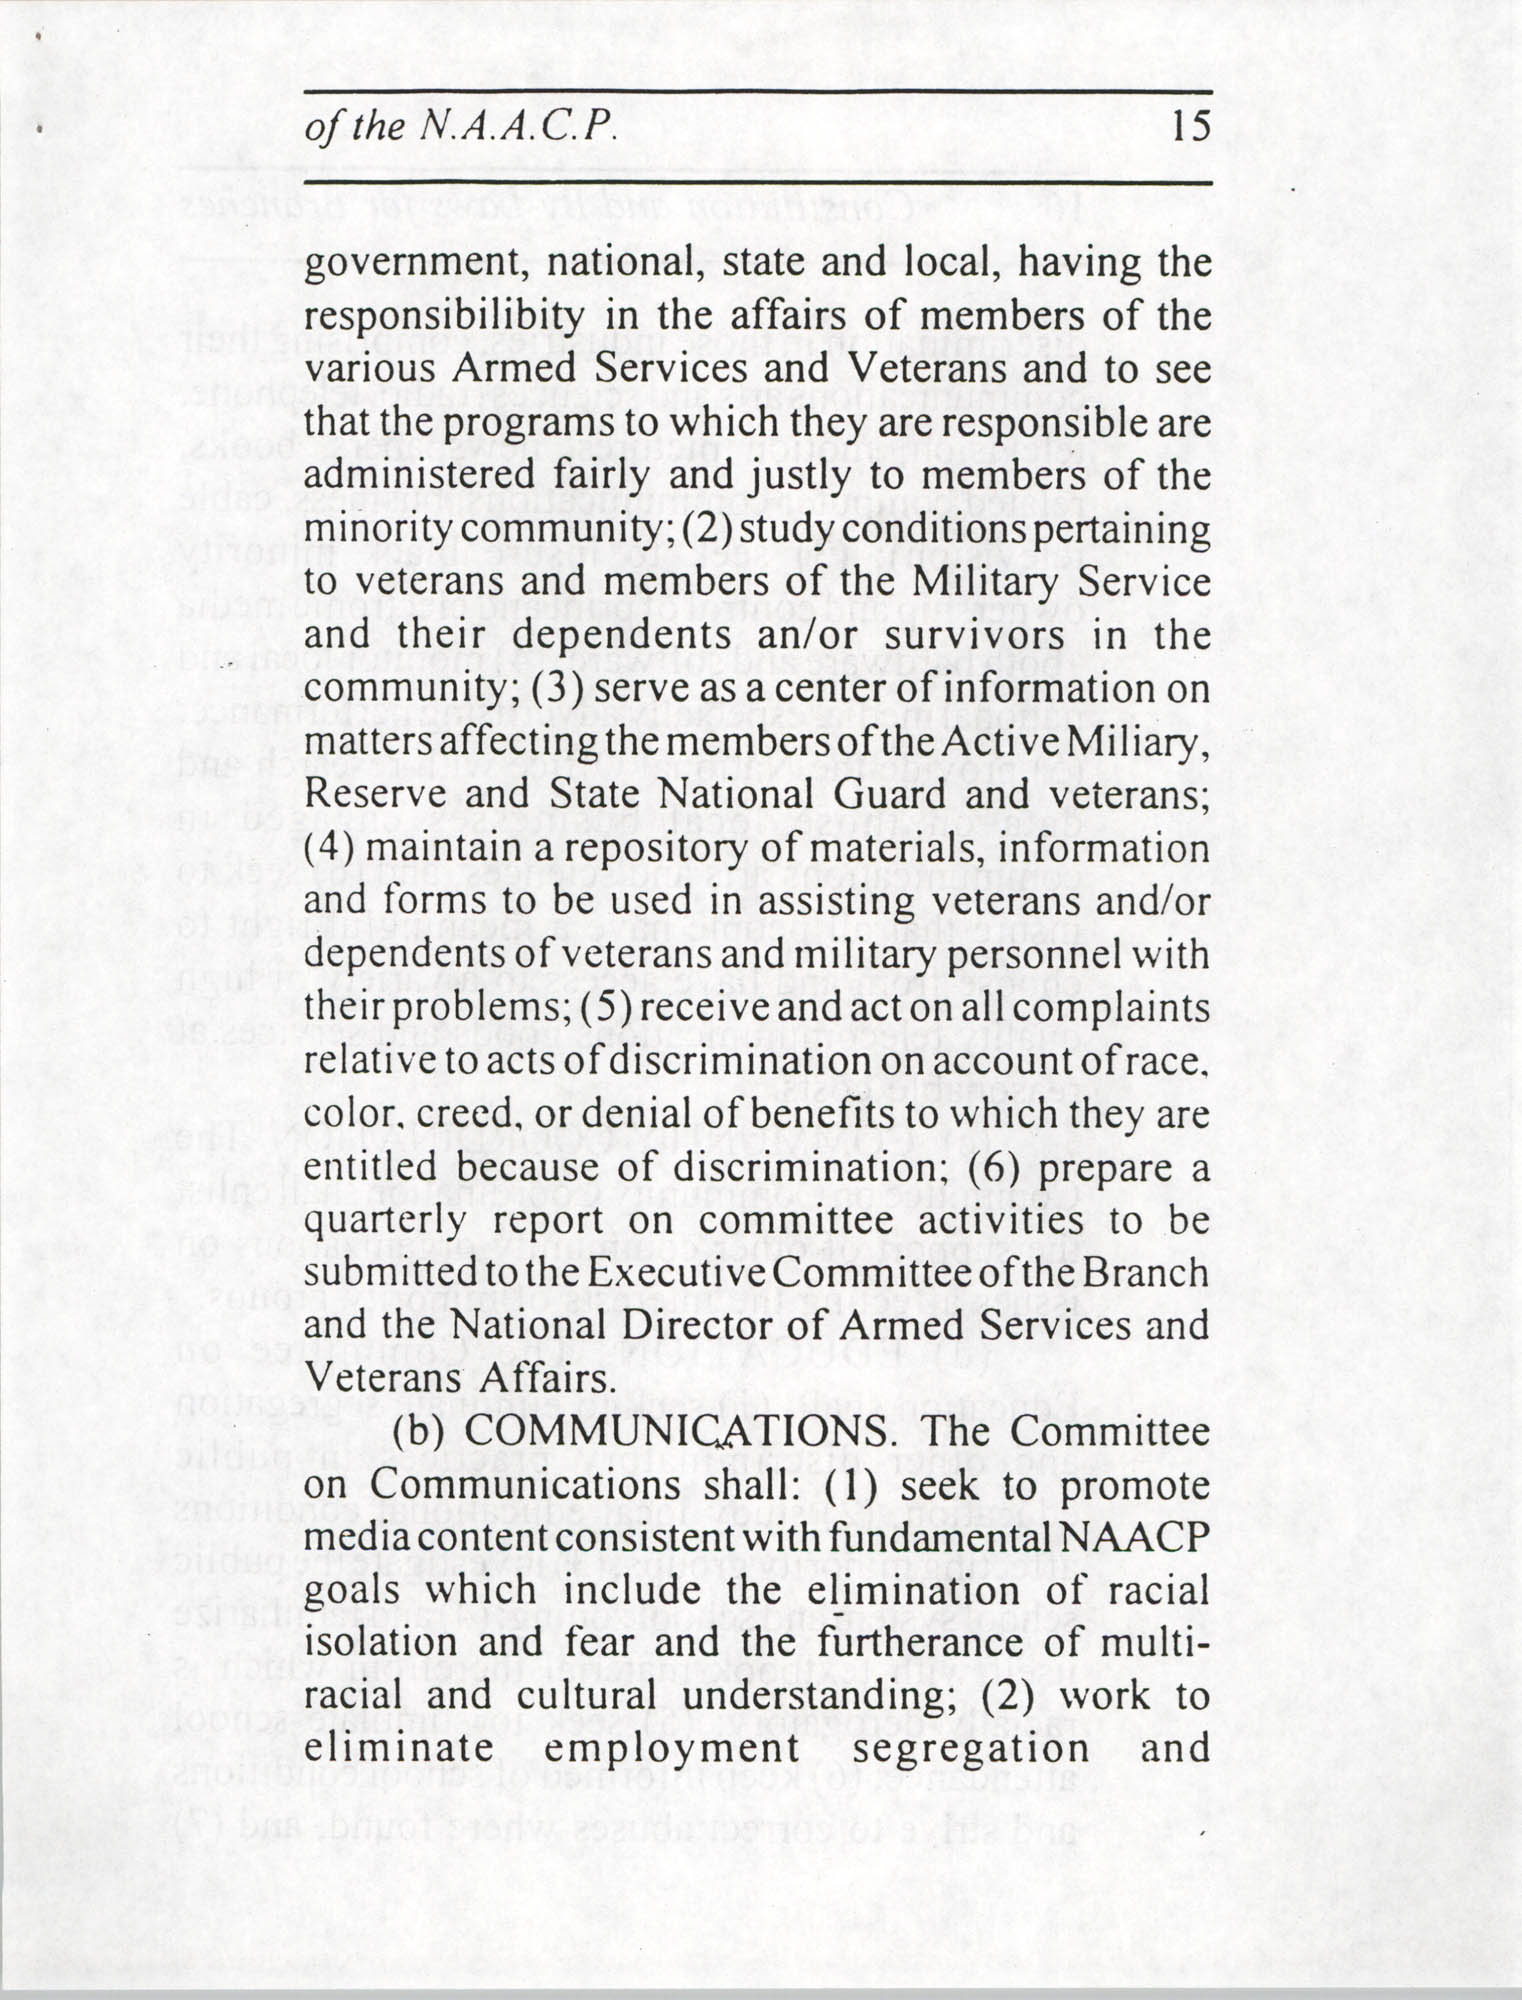 Constitution and By-Laws for Branches of the NAACP, July 1994, Page 15